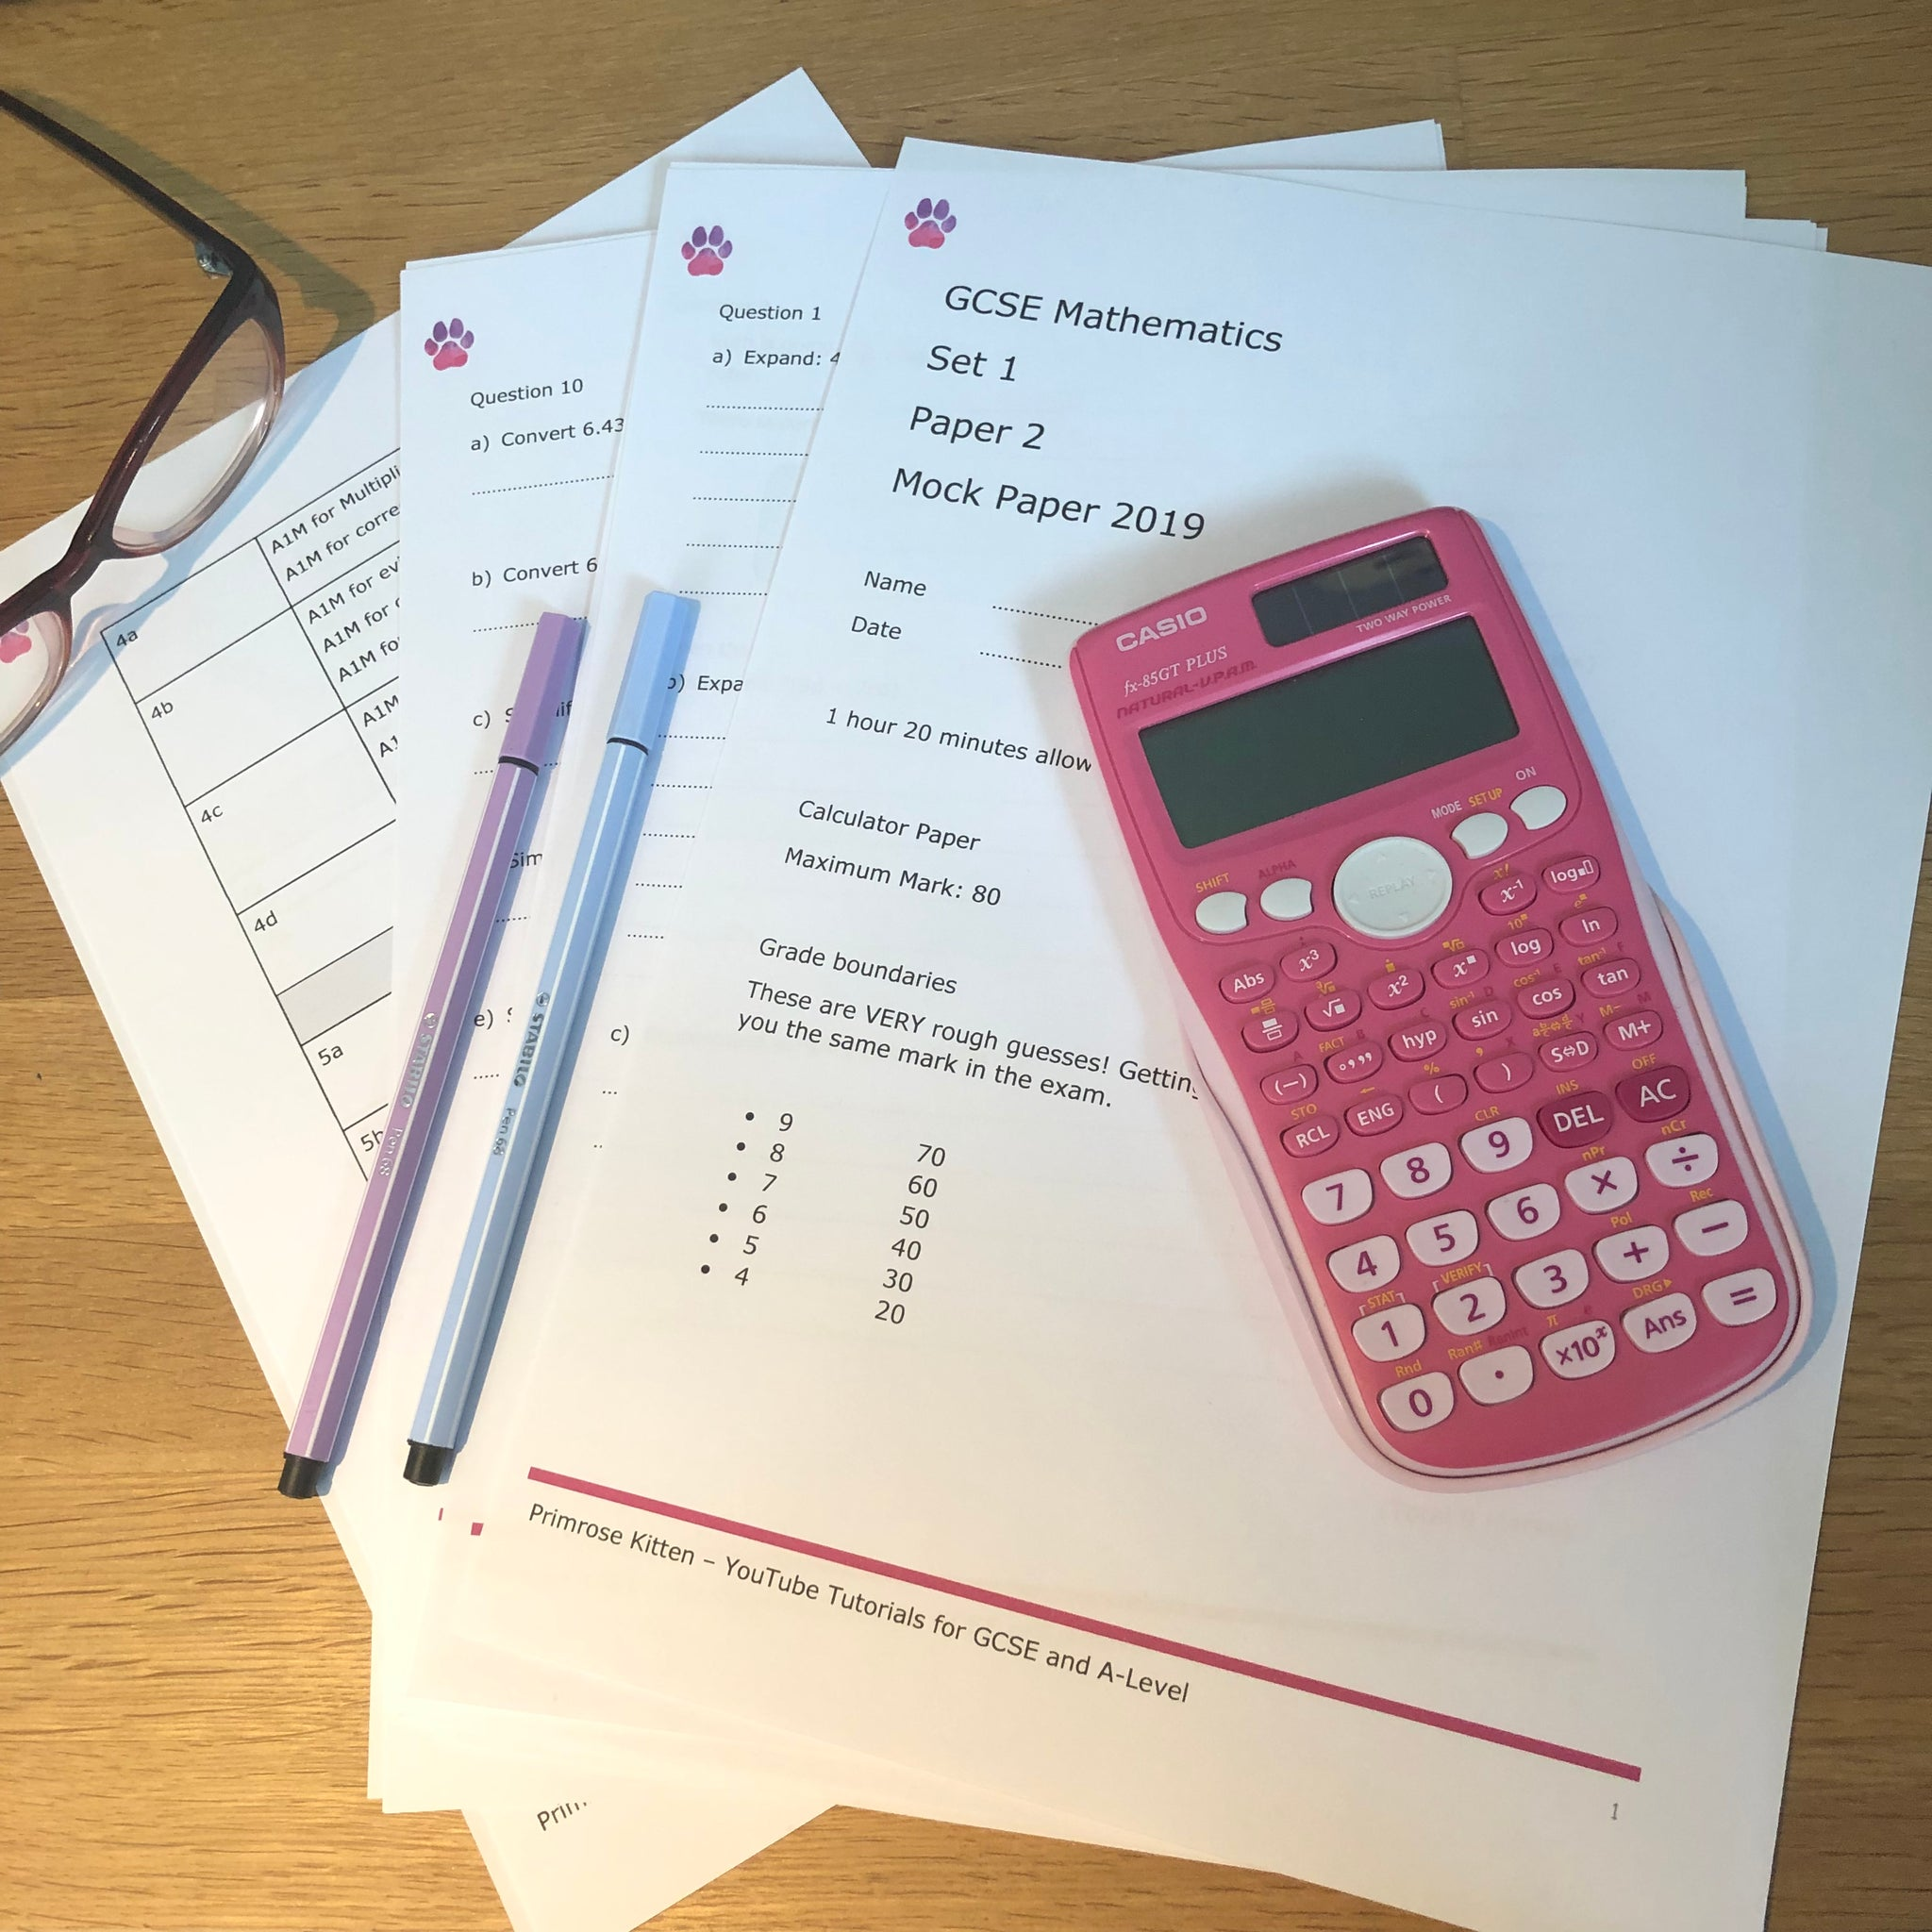 Gcse Foundation Tier Calculator Practice Exam Questions 2 Manual Guide